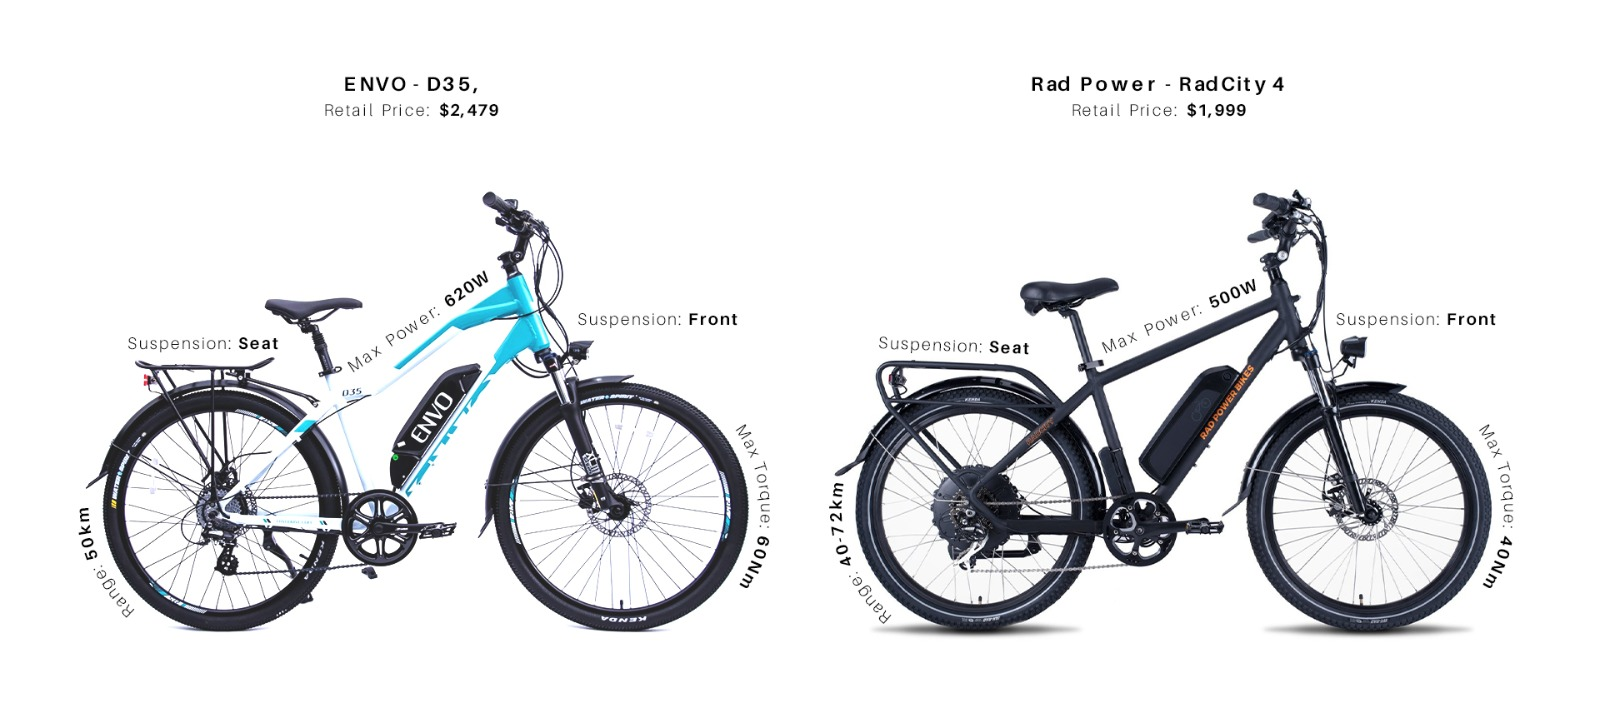 ENVO D35 vs Rad Power RadCity4